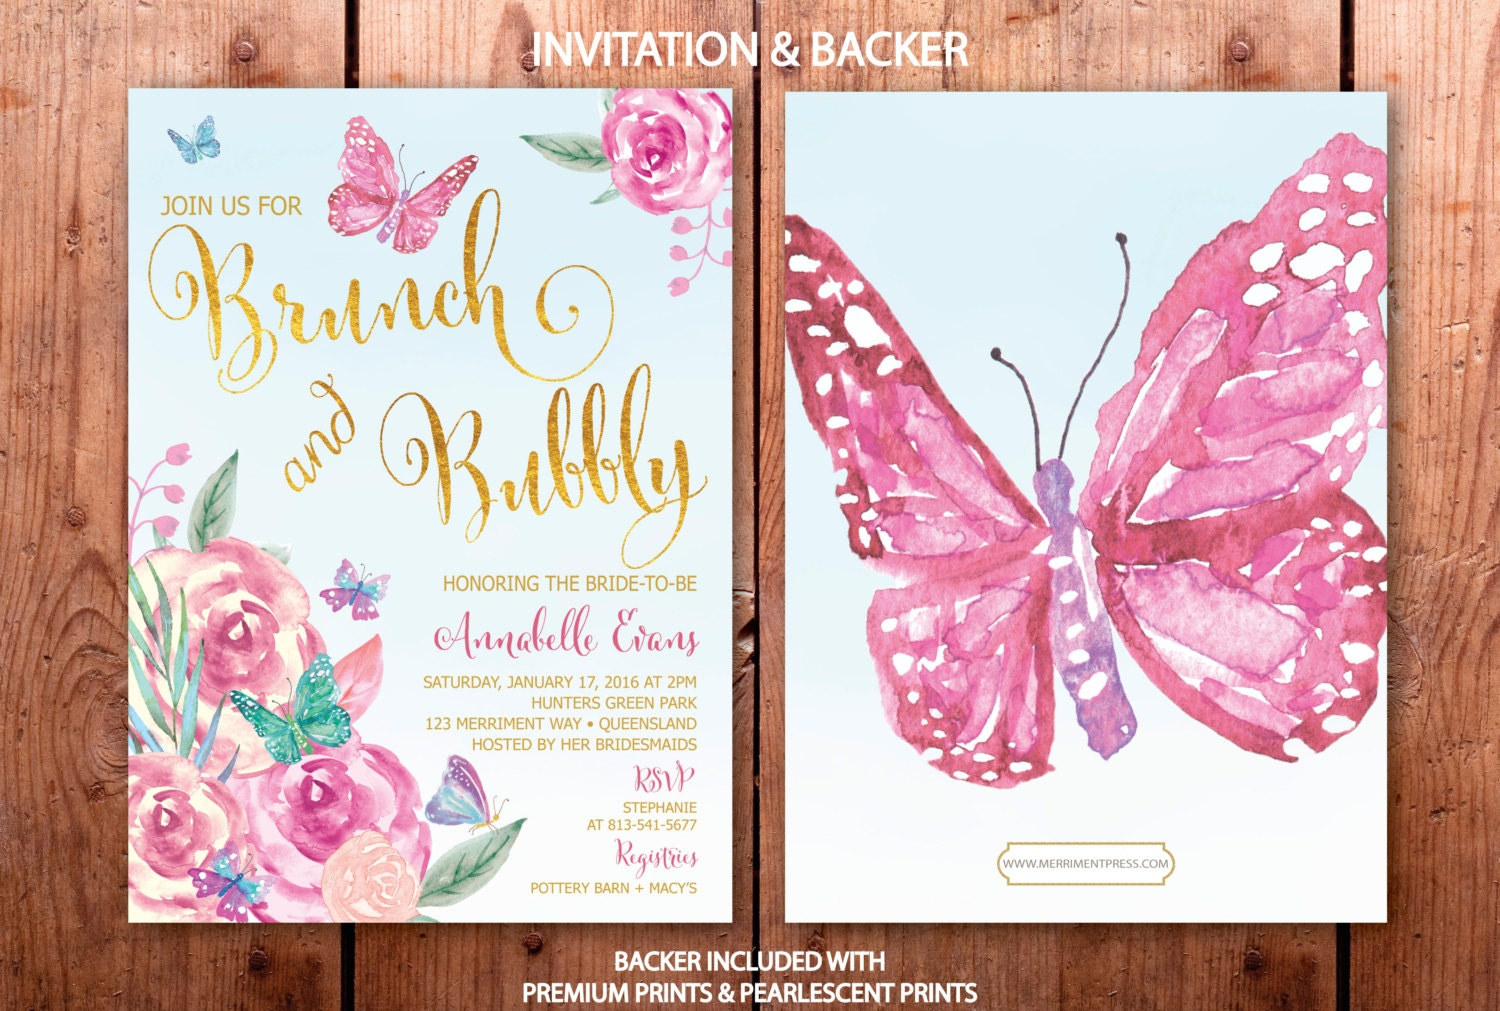 butterfly brunch and bubbly invitation butterflies bridal shower invite pink gold purple blue floral watercolor printed victoria